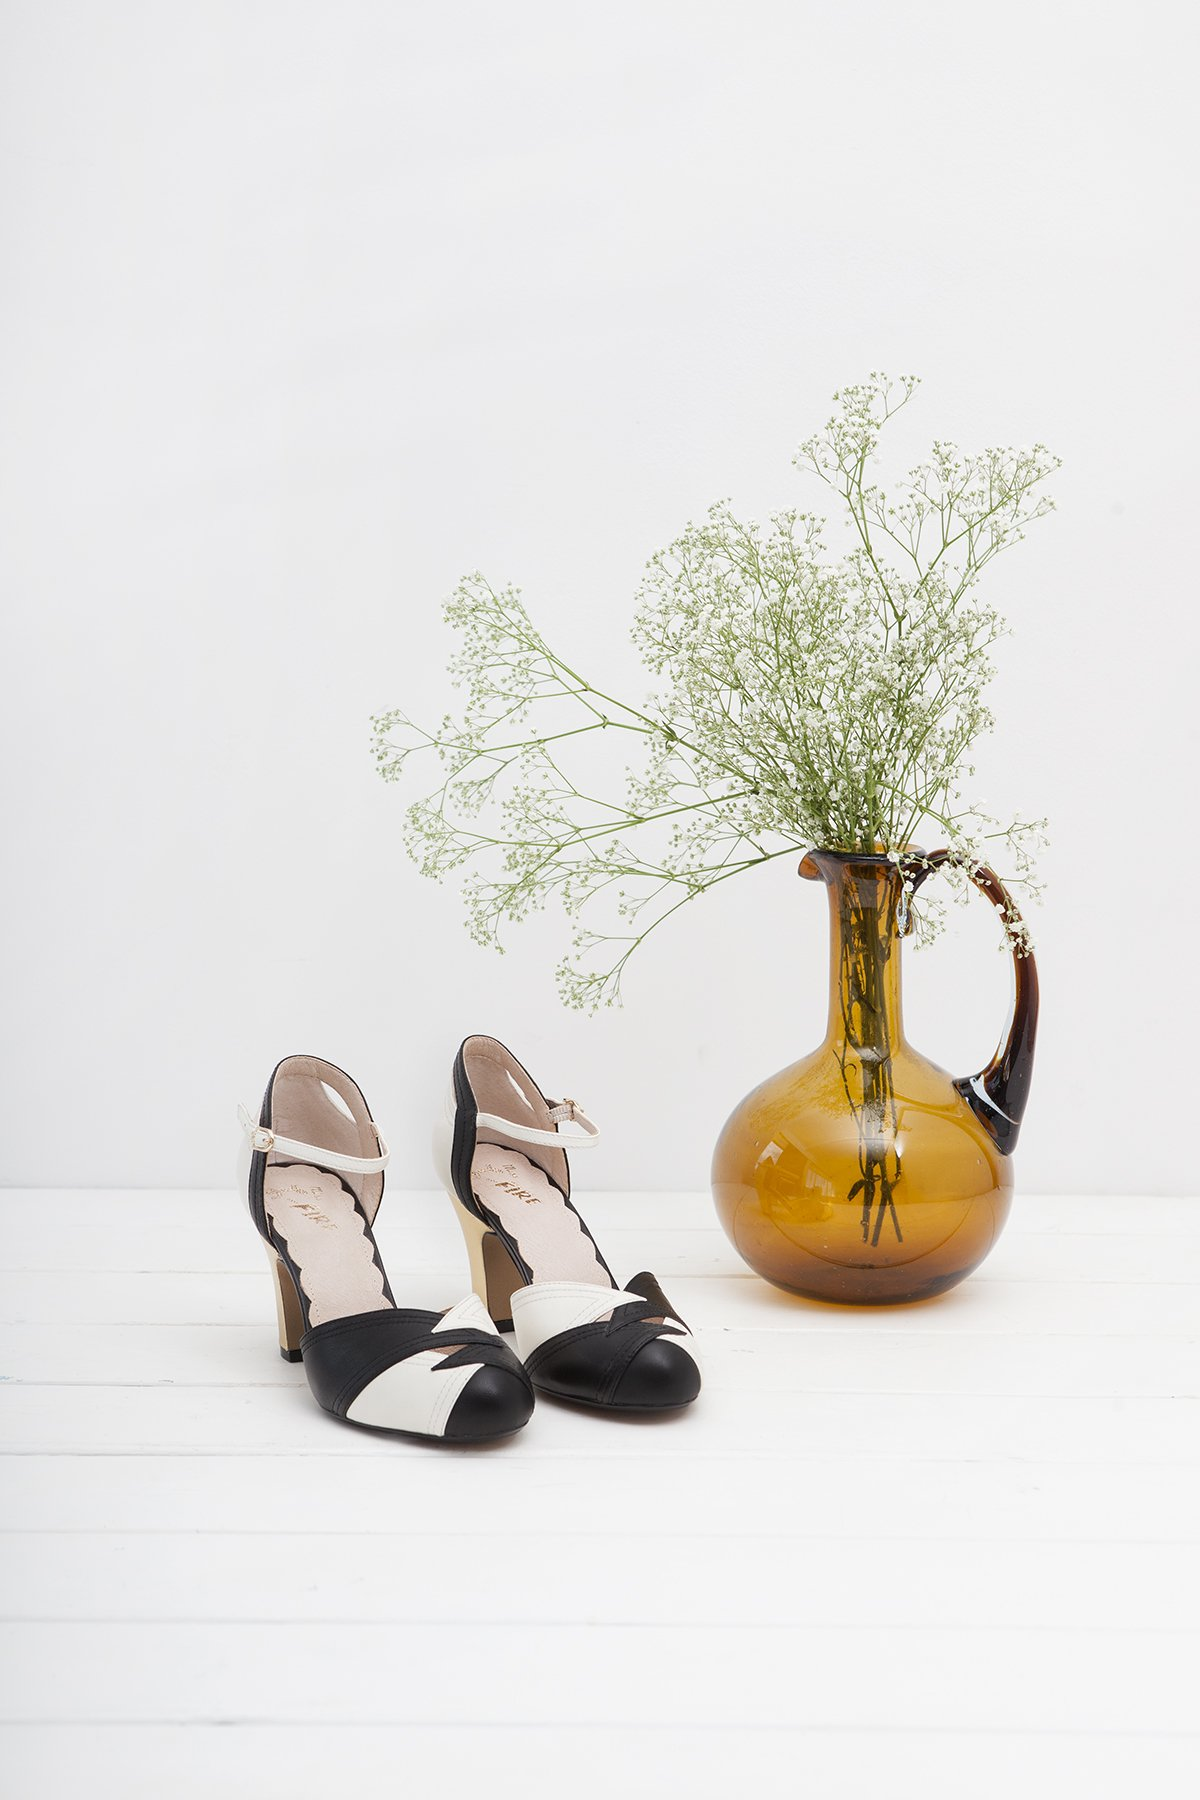 Miss L Four vintage shoes in black and white